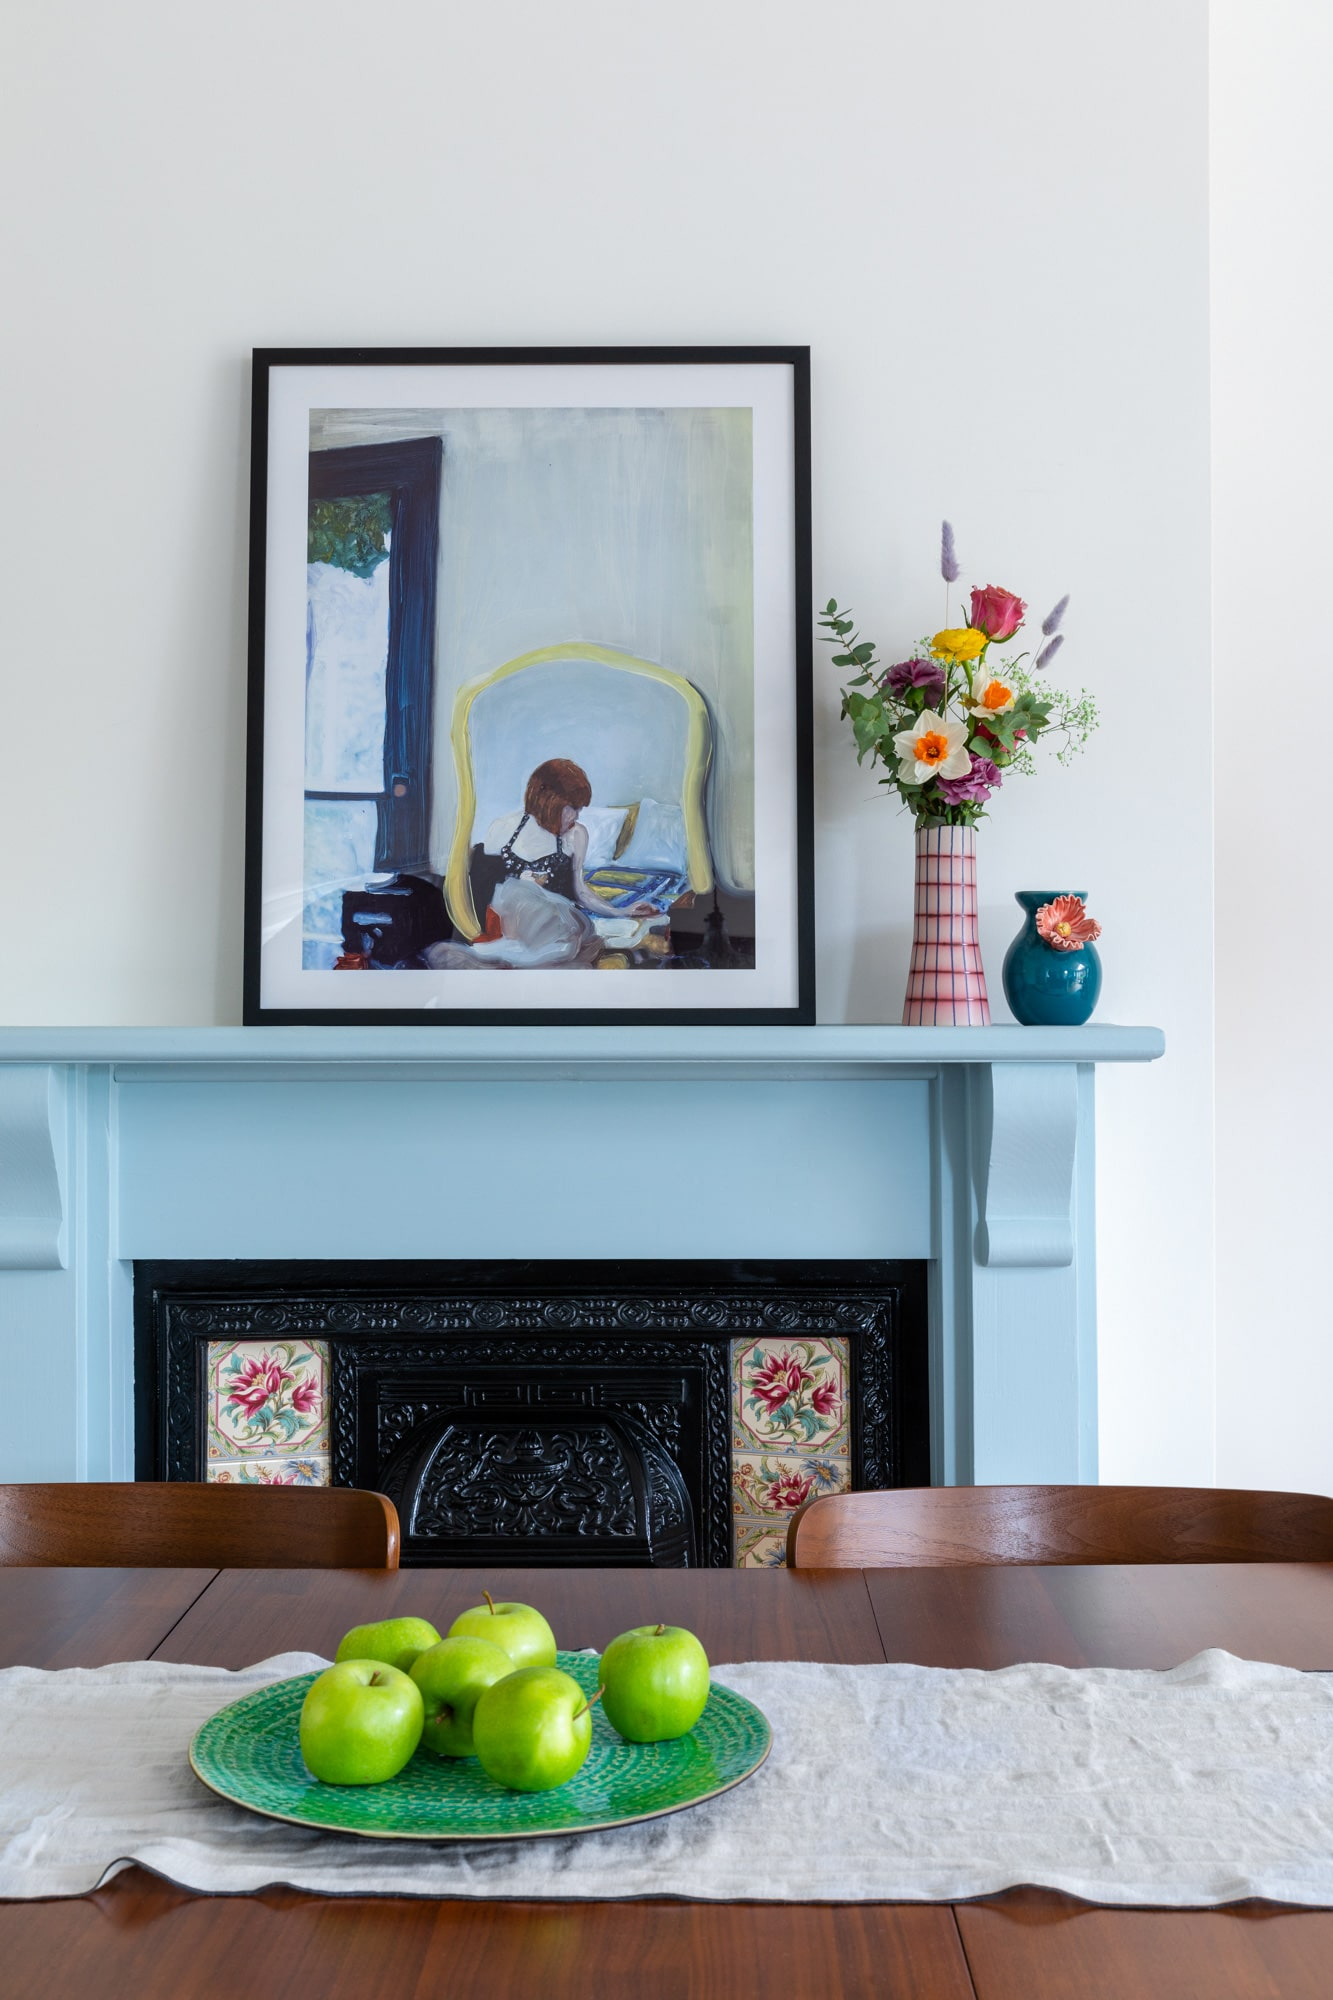 Interior detail photo of adining area: wooden table with green apples on a plate; blue fireplace with vases and art on top